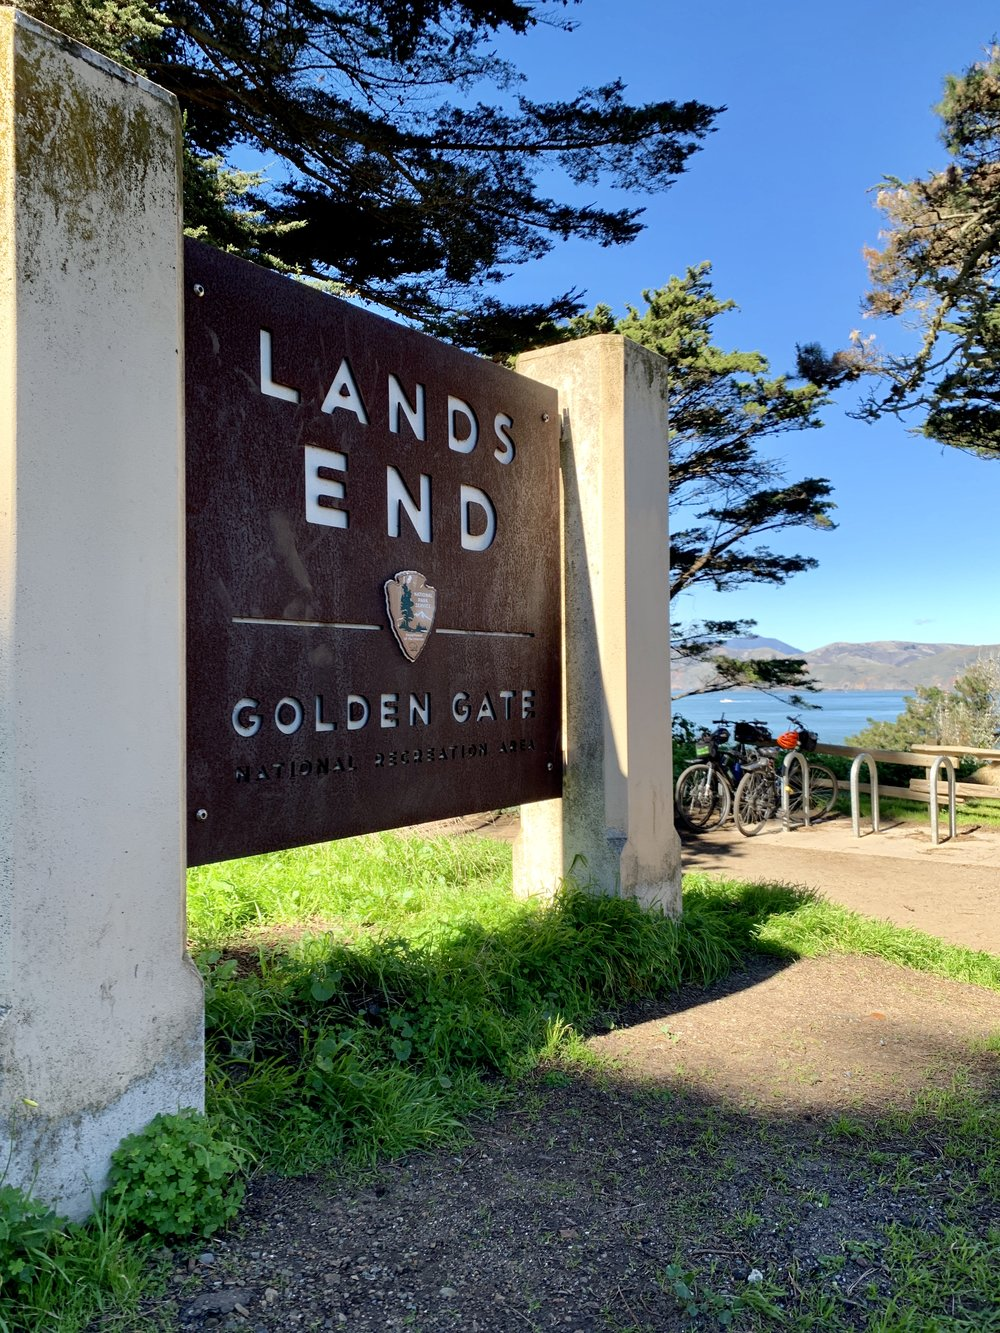 LandsEnd #sanfrancisco